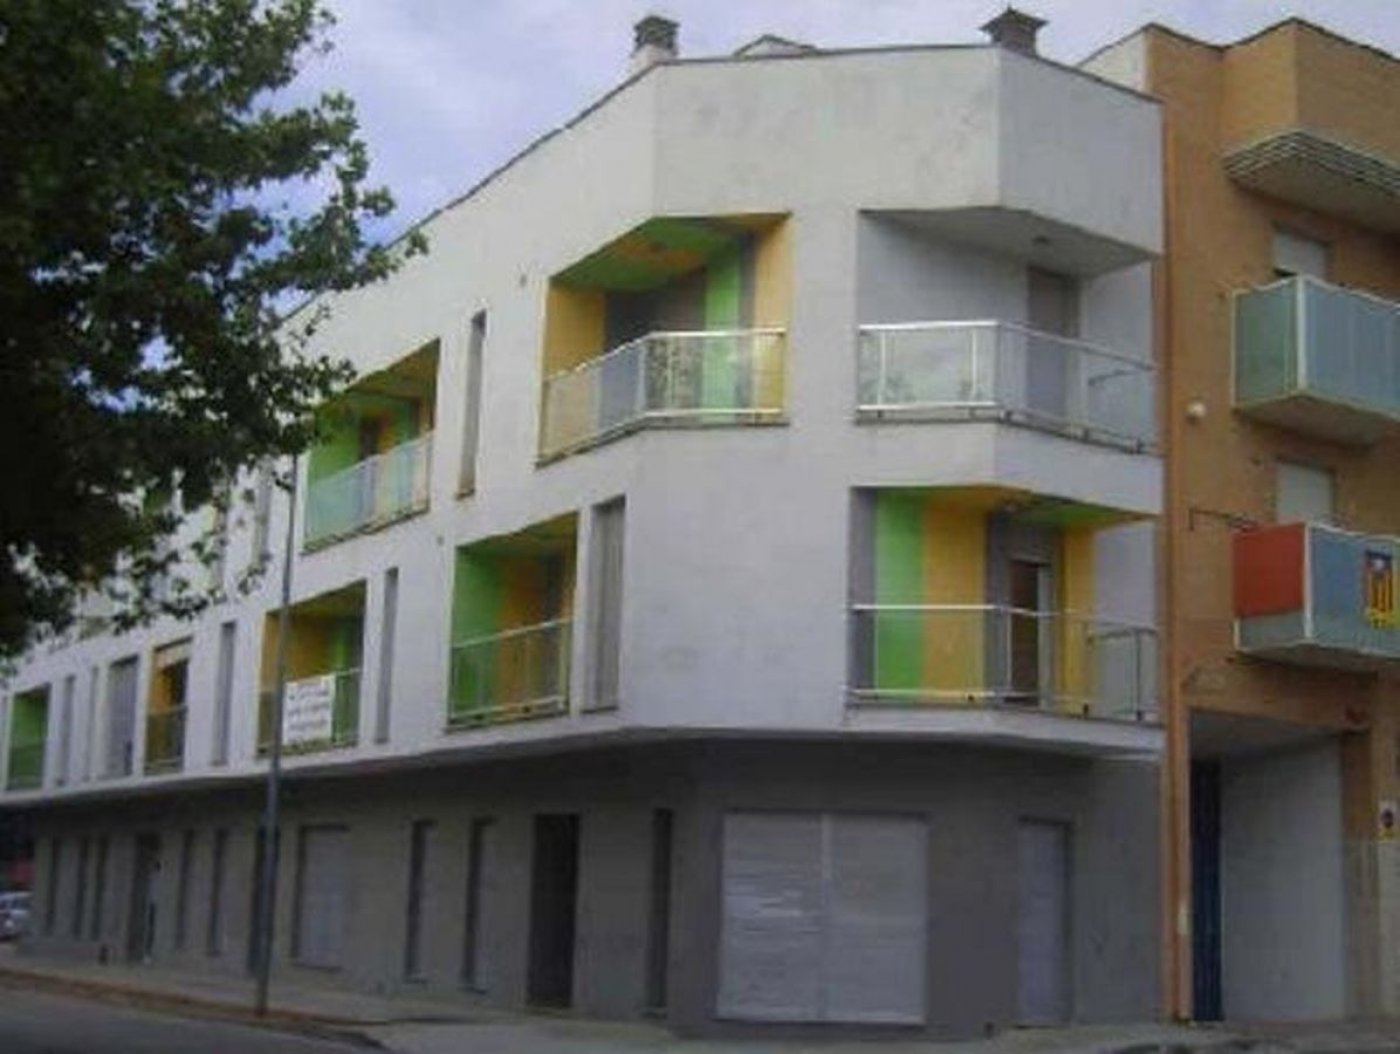 Flat for sale in Piscinas, Ulldecona